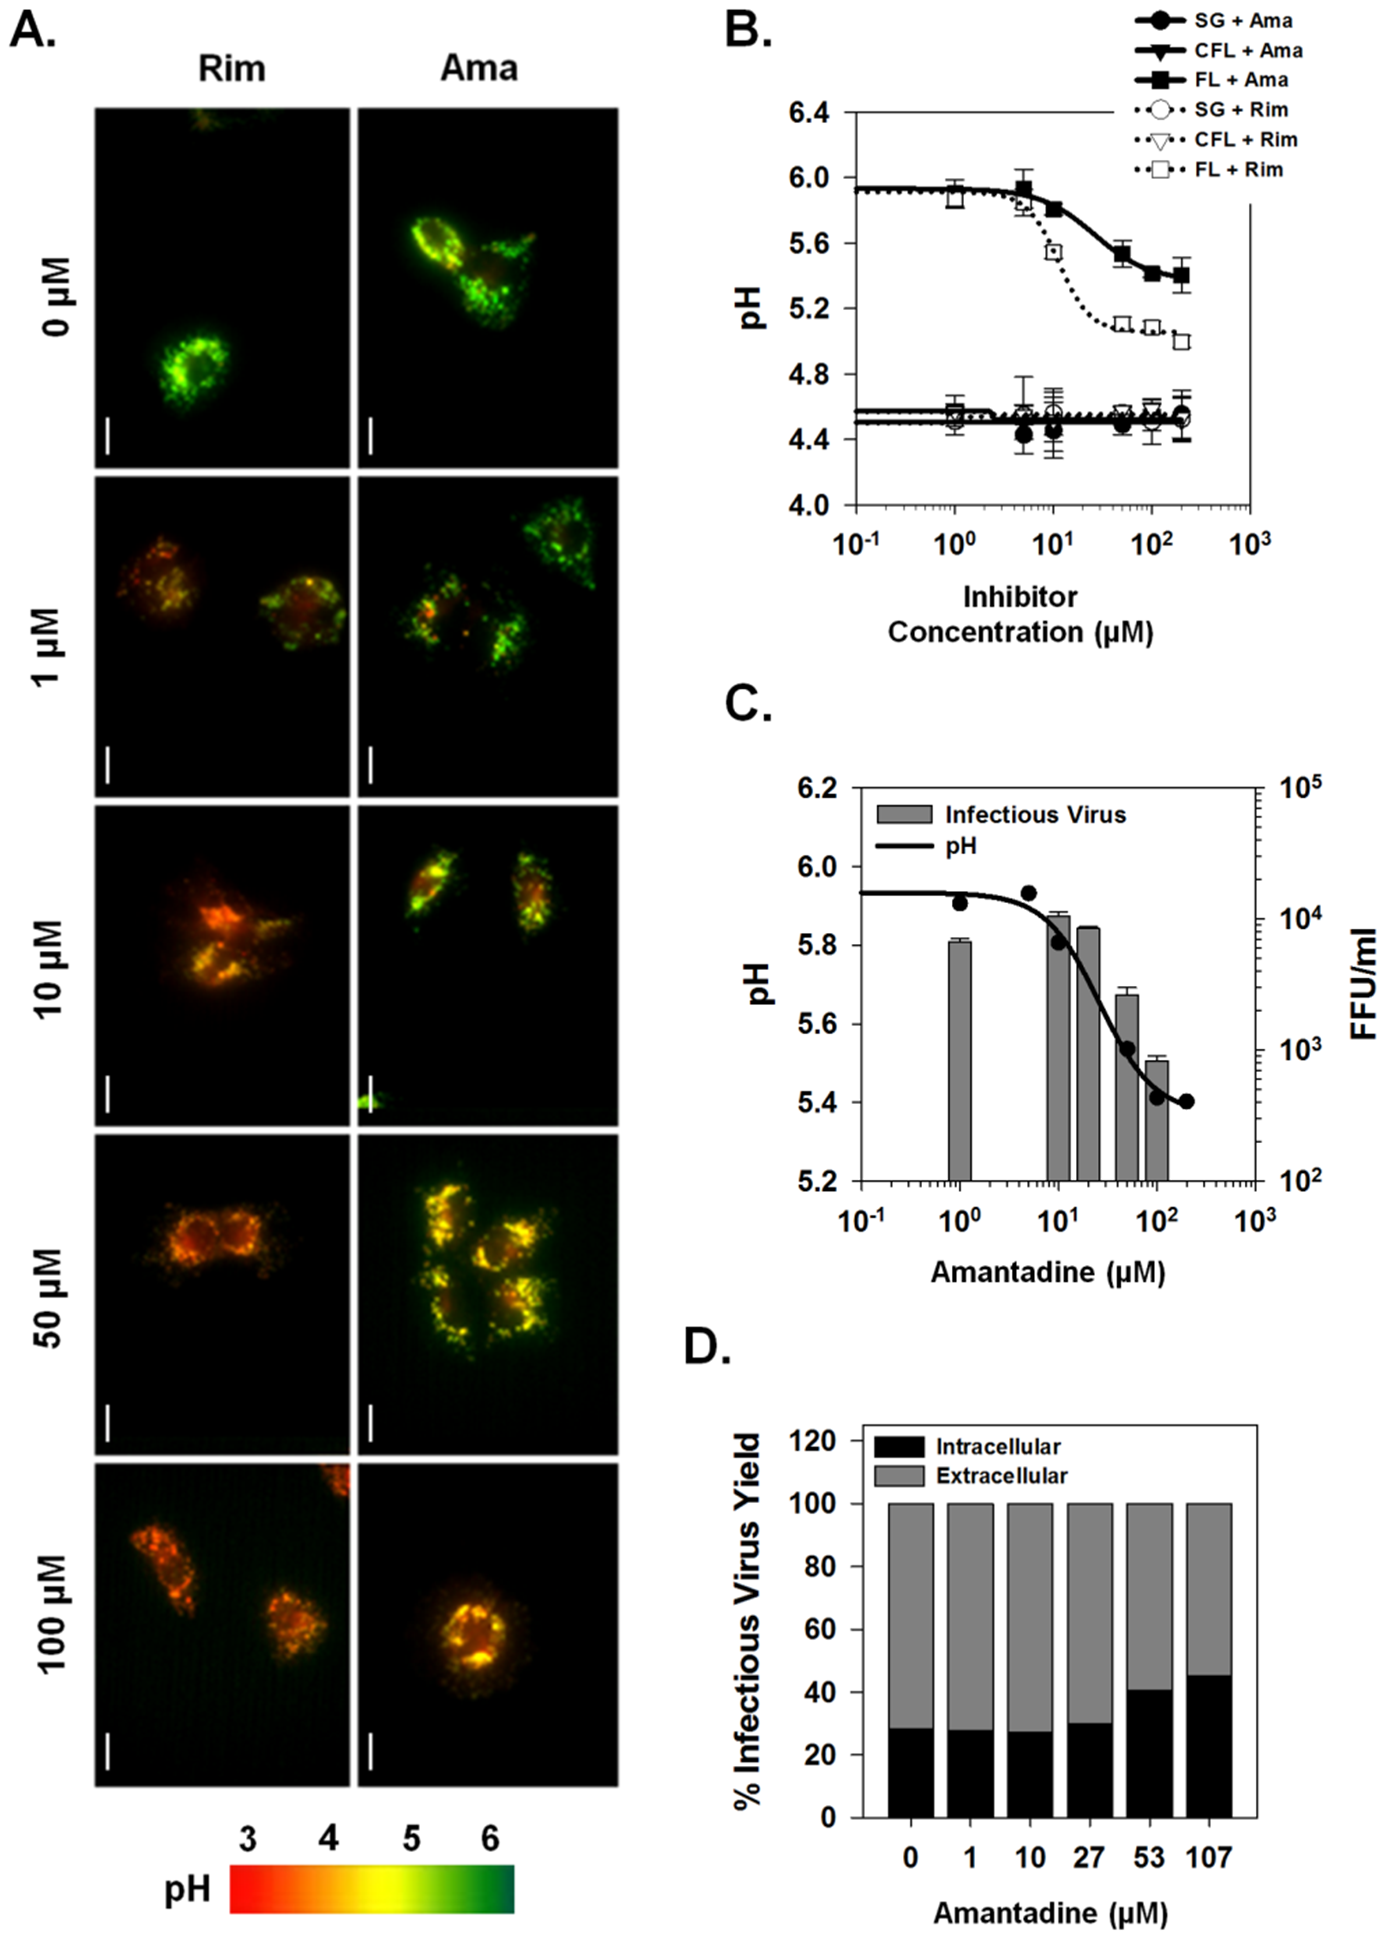 Effects of viroporin inhibitors on intracellular vesicular pH and infectious virus production.